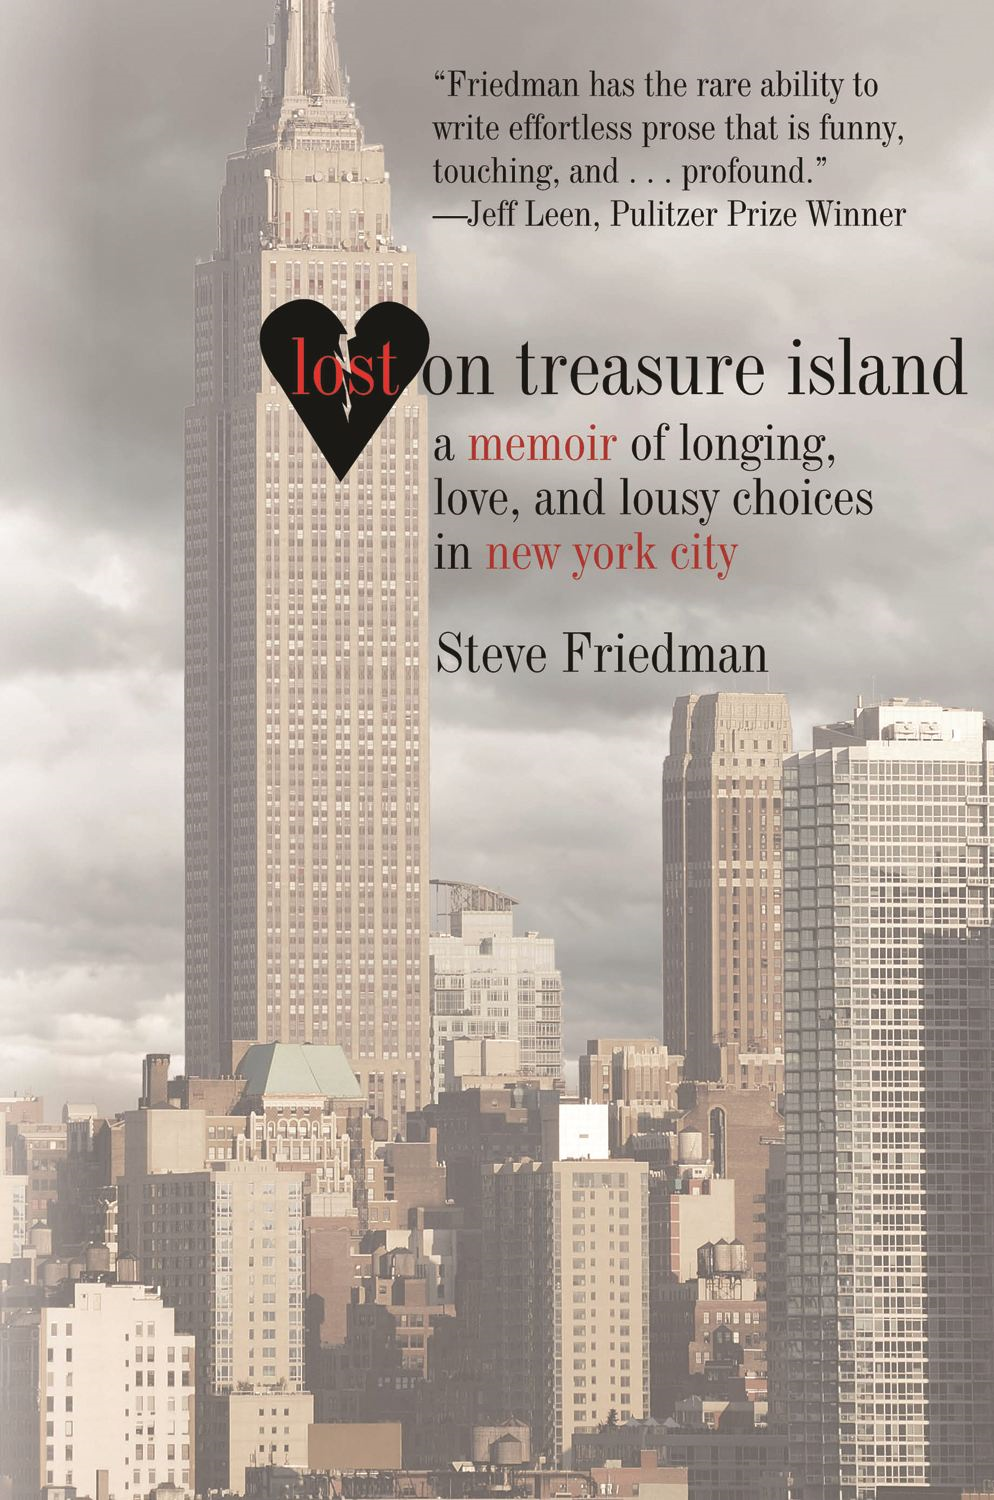 Lost on Treasure Island: A Memoir of Longing, Love, and Lousy Choices in New York City By: Steve Friedman